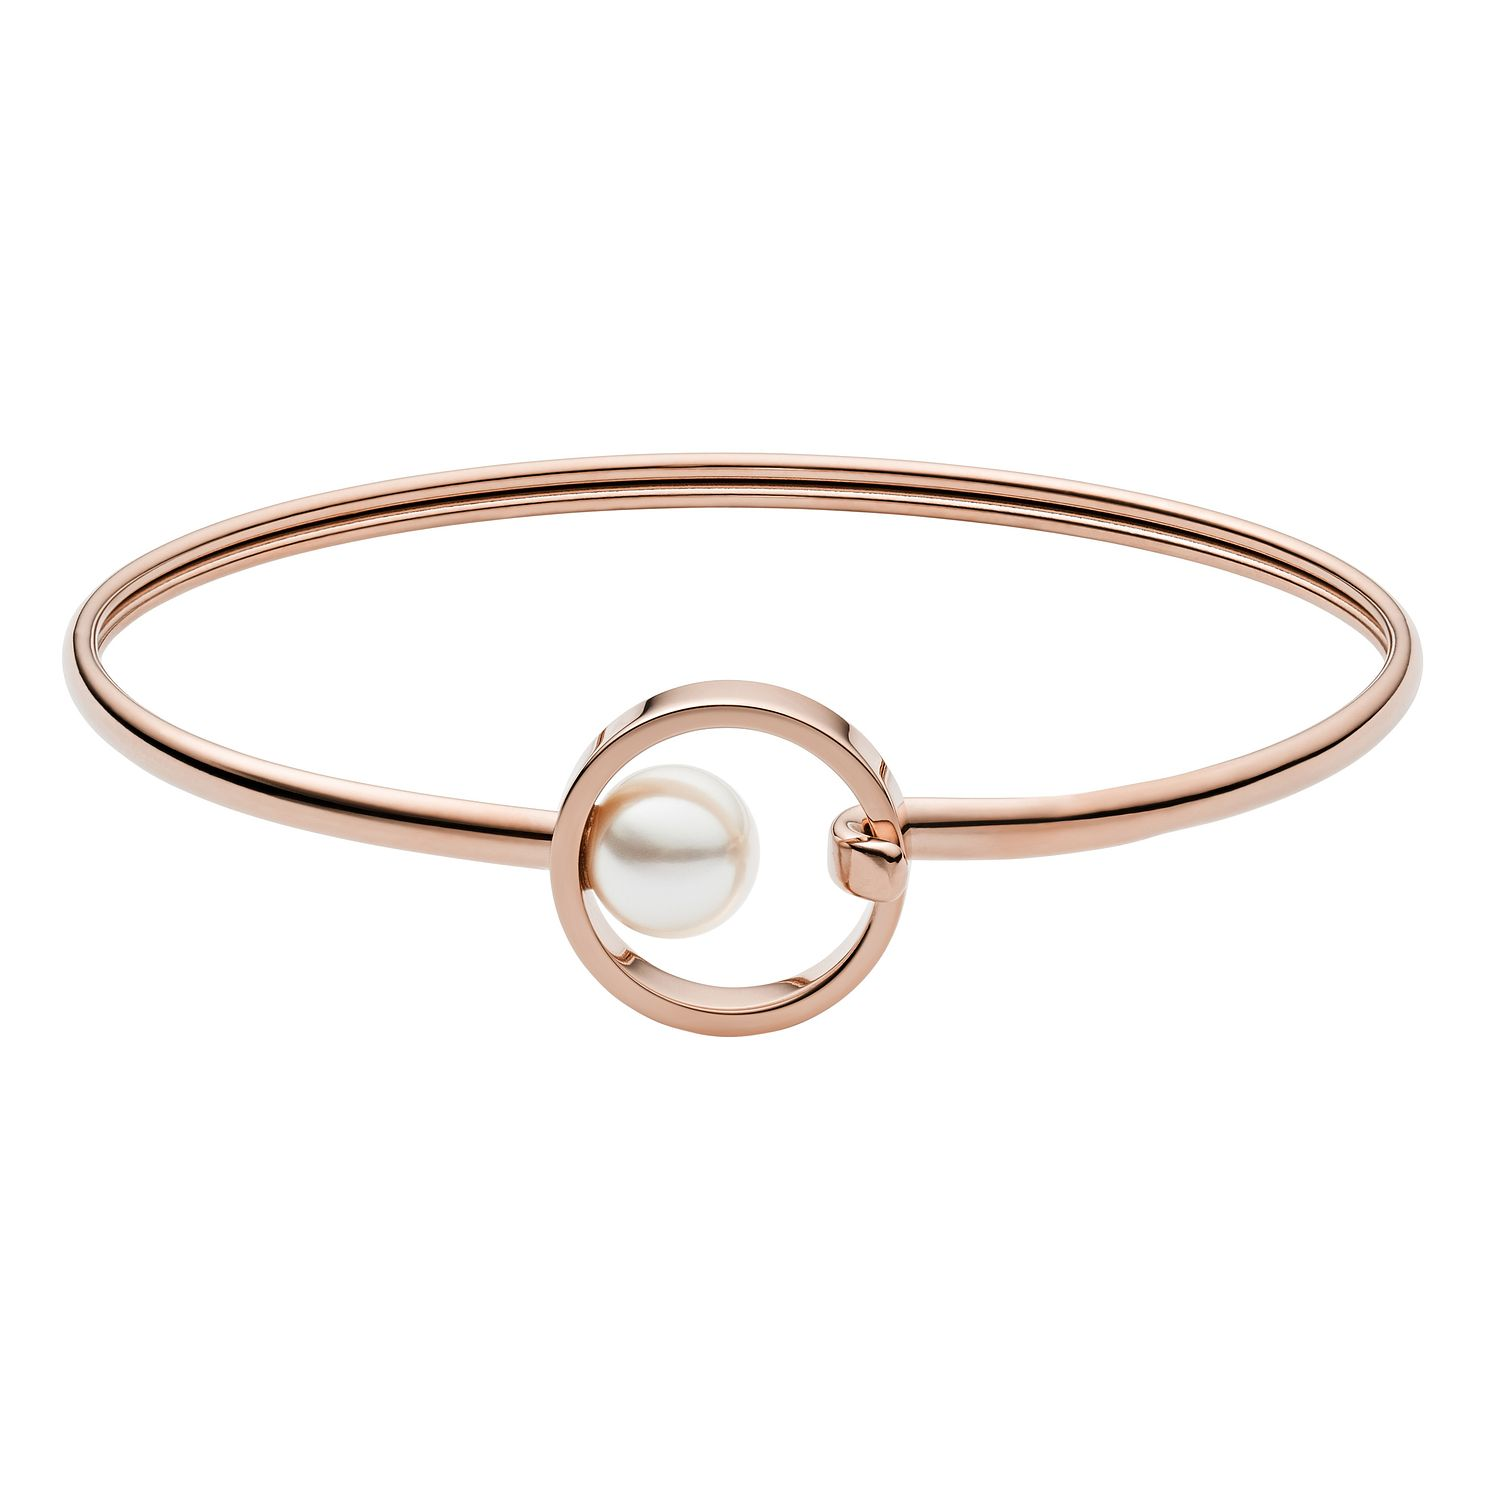 Skagen Agnethe Ladies' Rose Gold Tone Pearl Bracelet - Product number 4235835